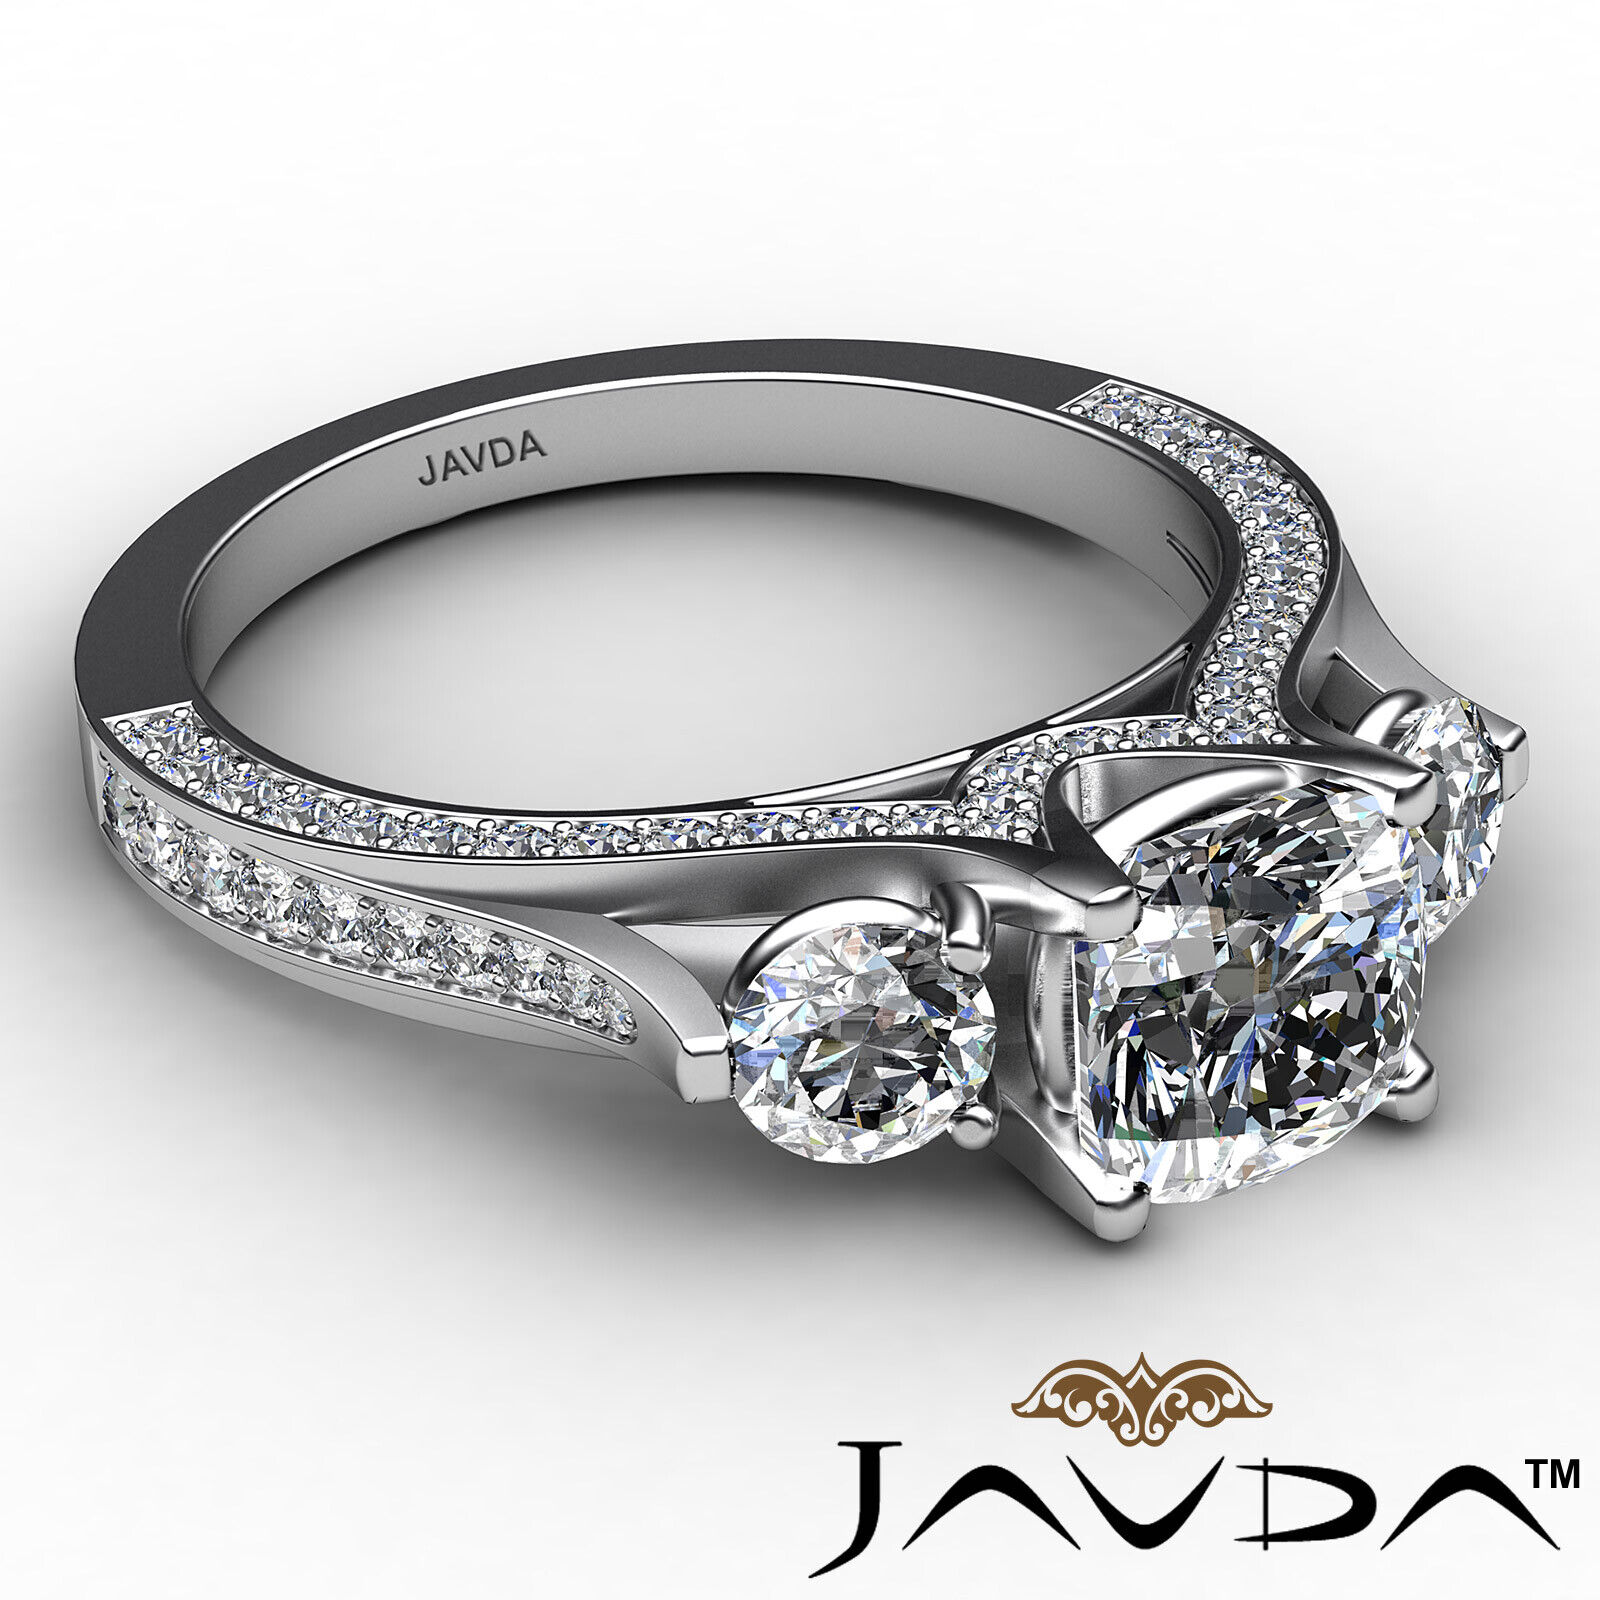 Cushion Diamond Engagement Ring Certified by GIA E Color & VVS1 clarity 2.1 ctw 6